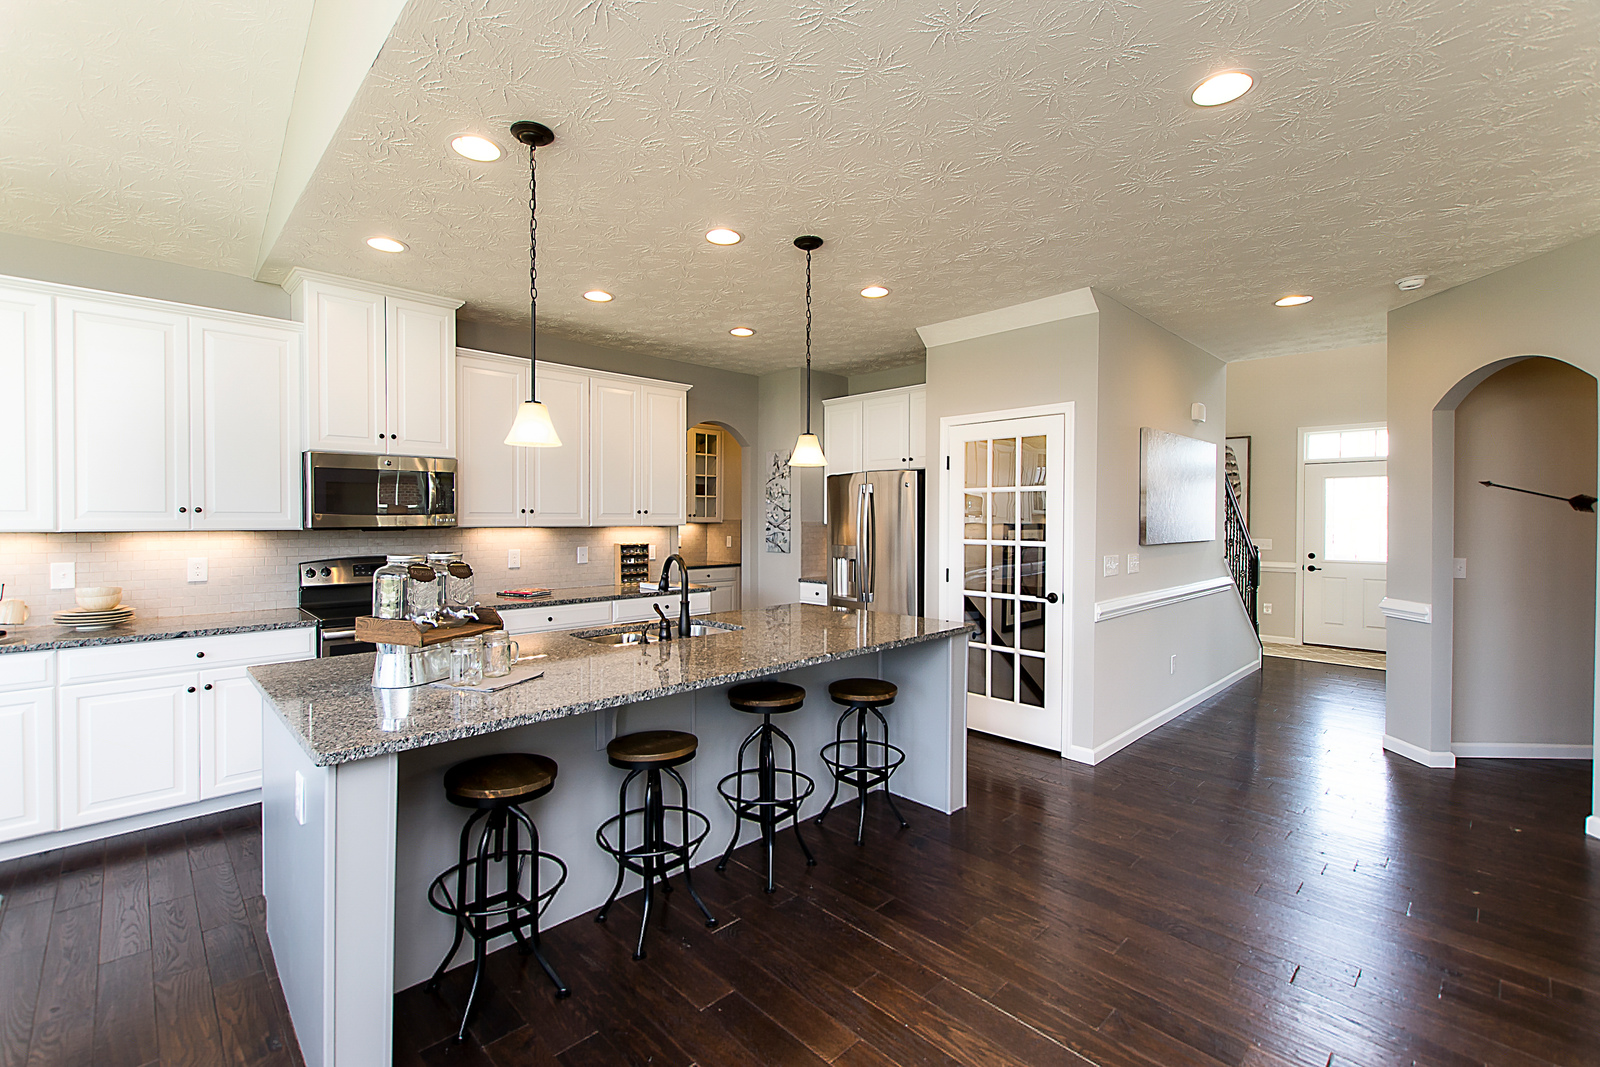 New Construction Single Family Homes For Sale Dunkirk